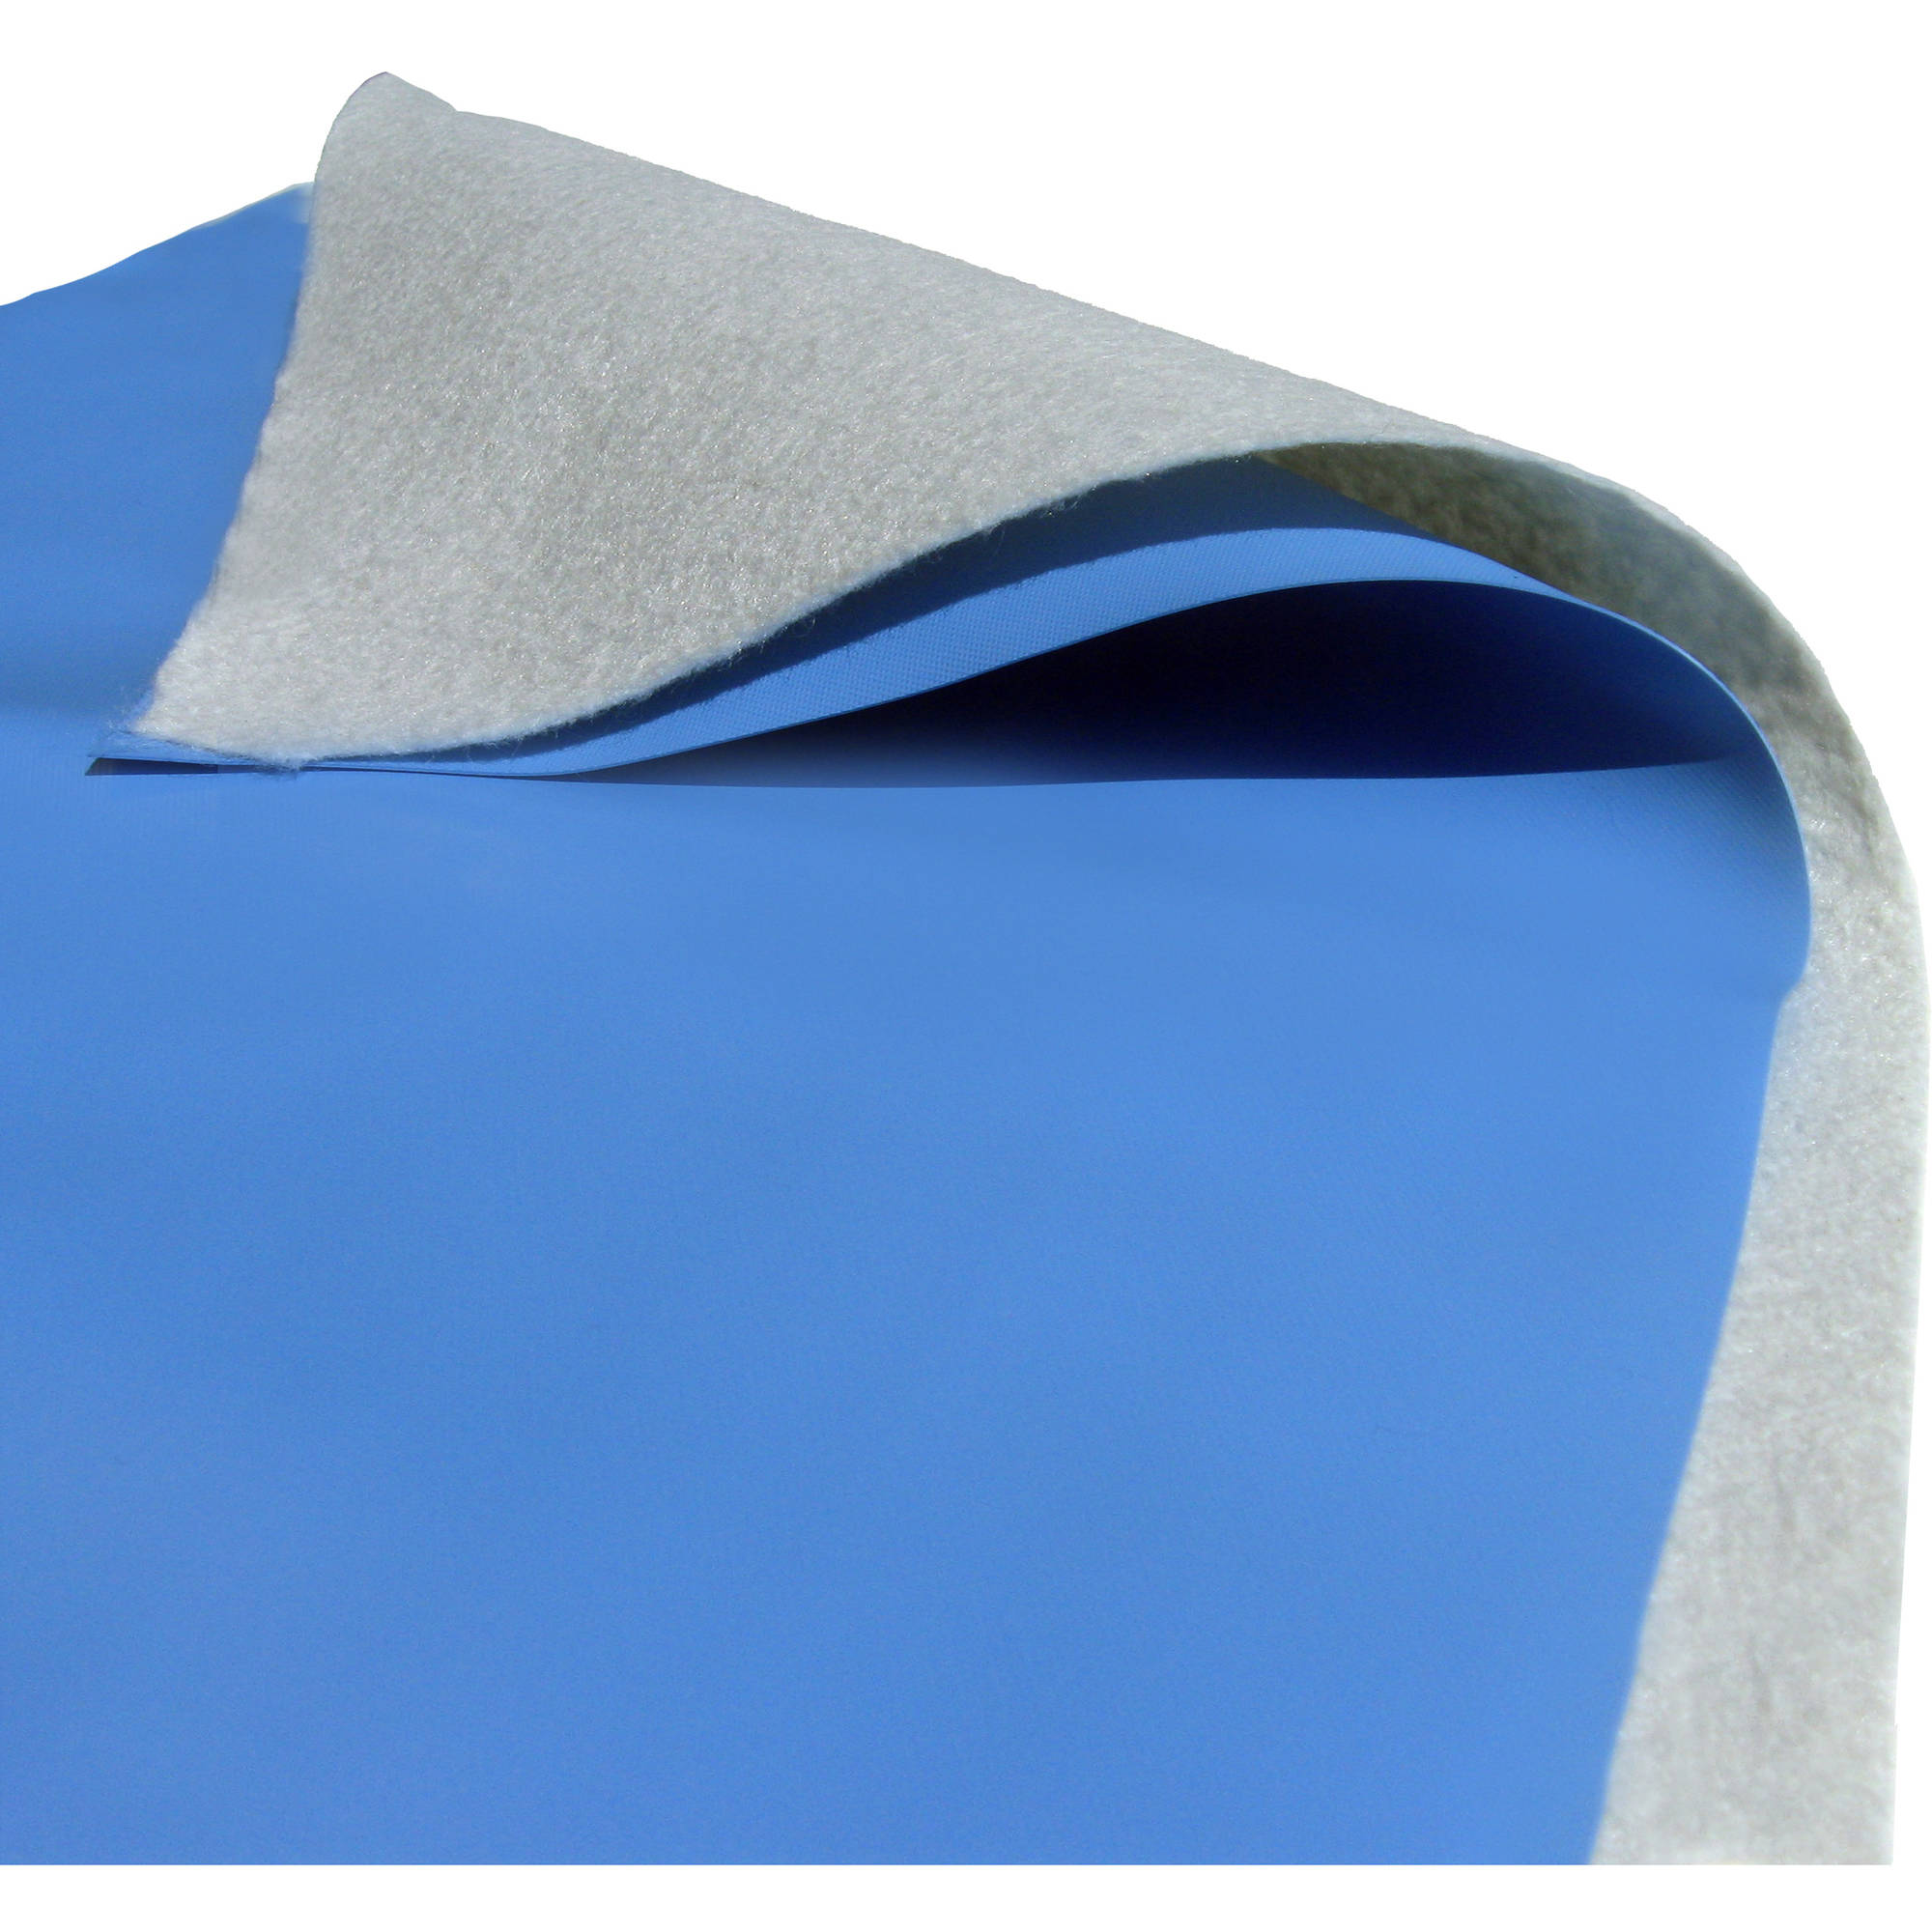 Blue Wave Oval Liner Pad for Above-Ground Pools, 18' x 33'